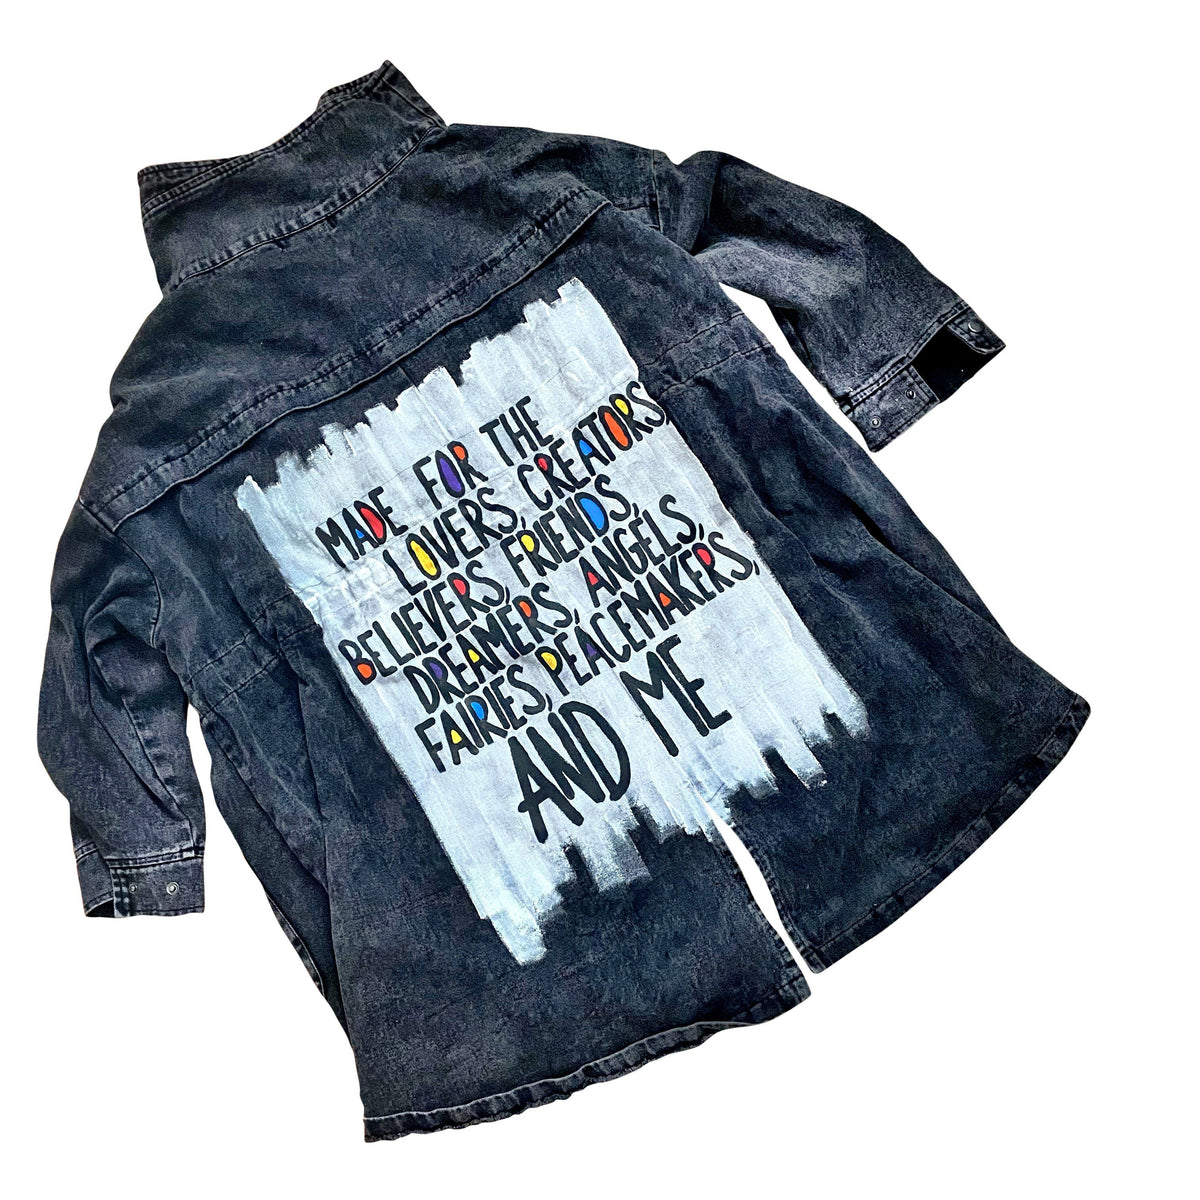 Asymmetric, oversized black denim jacket. Wording on back 'Made for the lovers, creators, delivers, friends, dreamers, beauties, angels, fairies, peacemakers, artists, heartbreakers and me', over white base, with randoms pops of color. Signed @wrenandglory.